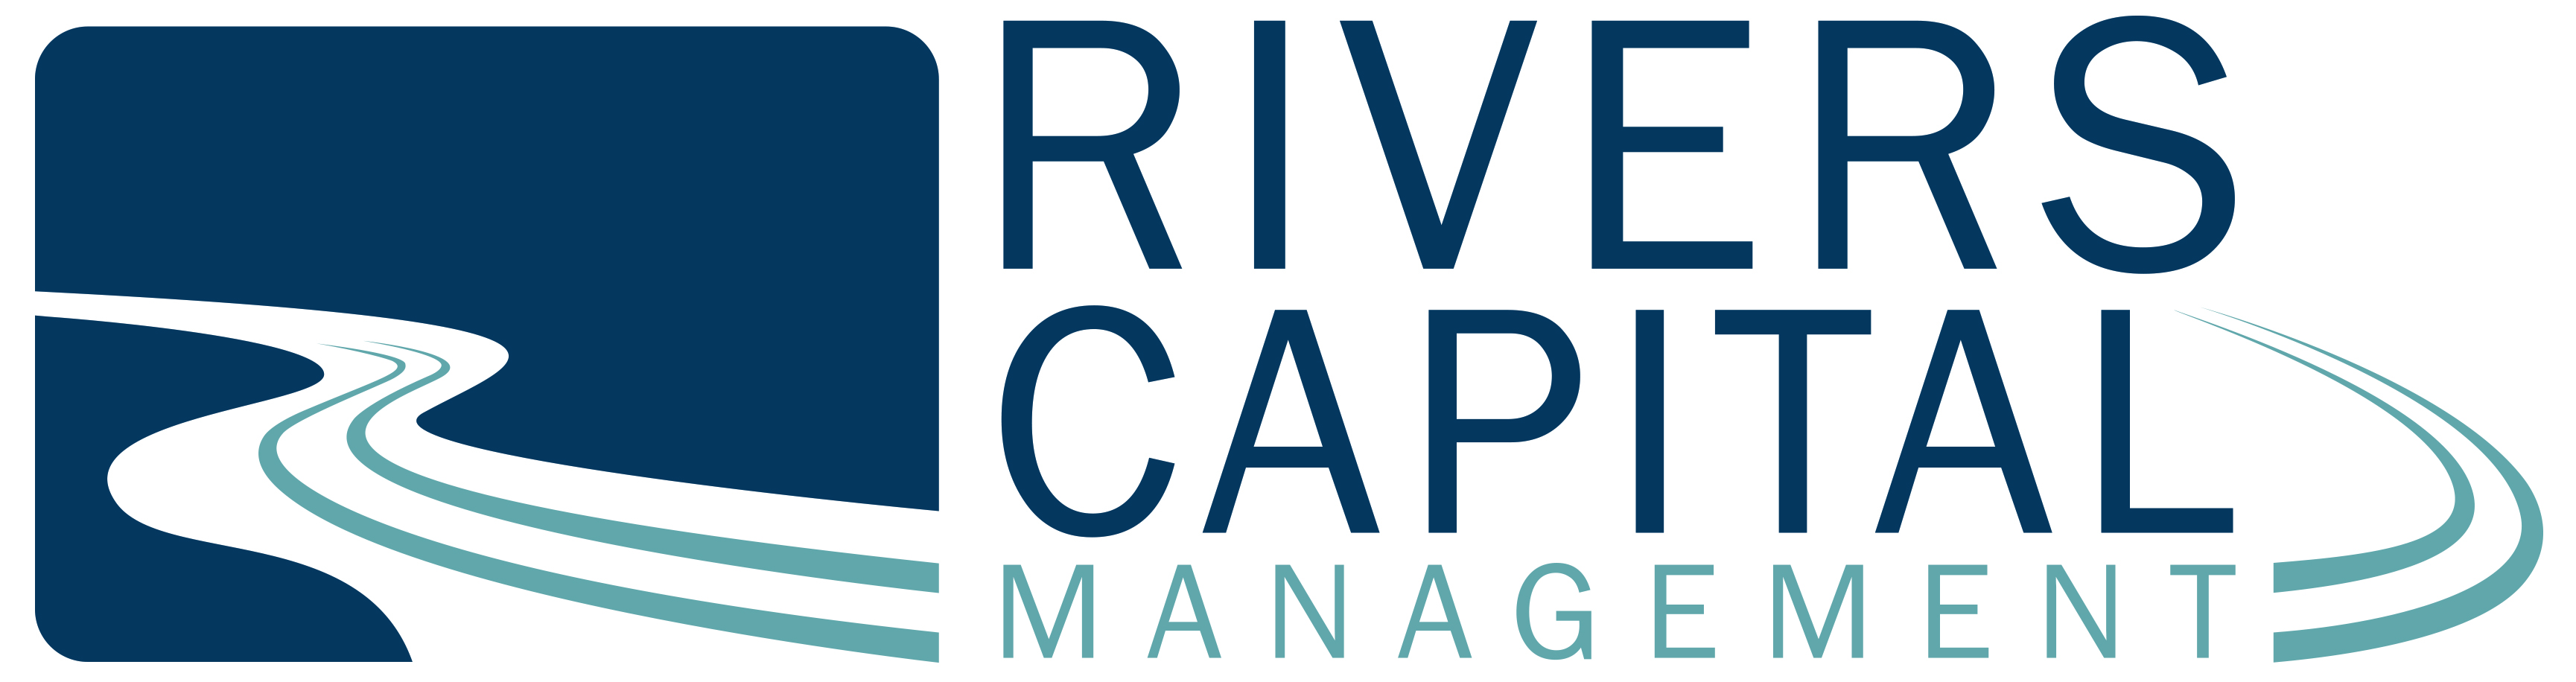 Rivers Capital Management